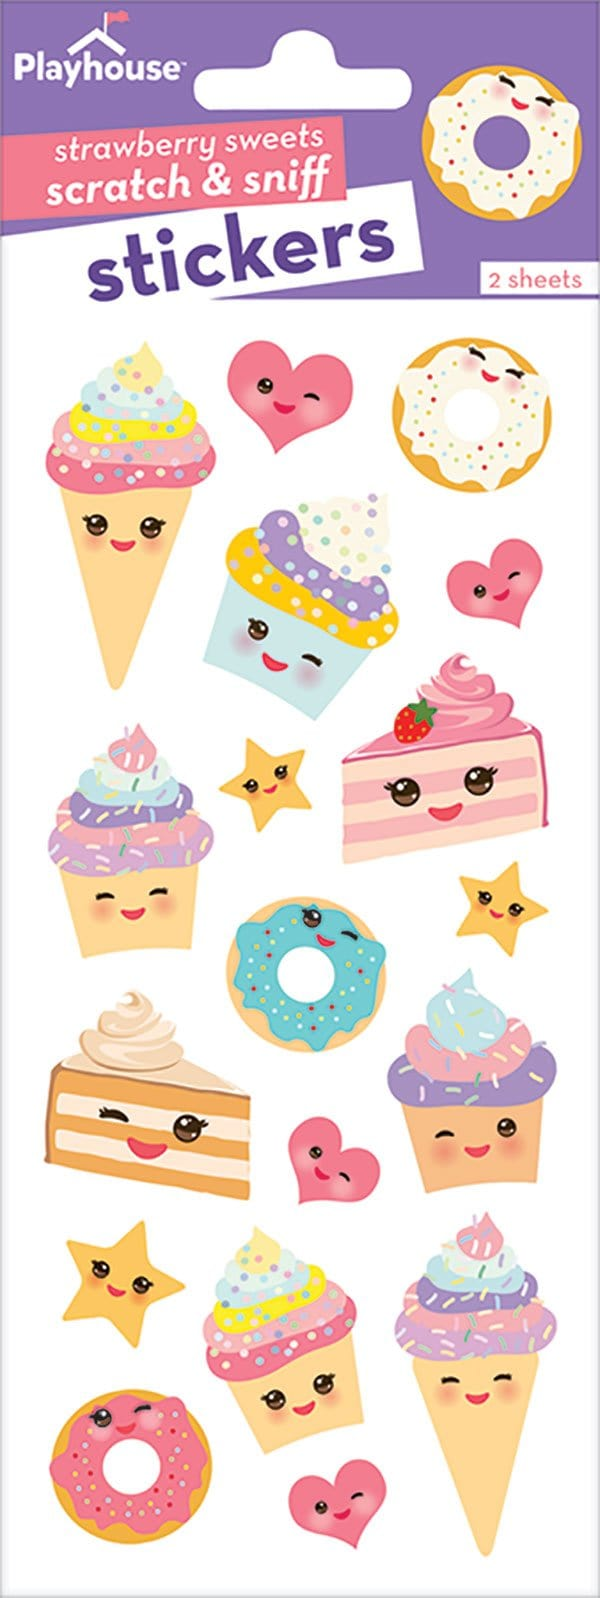 Kawaii Sweets Scratch and Sniff Stickers